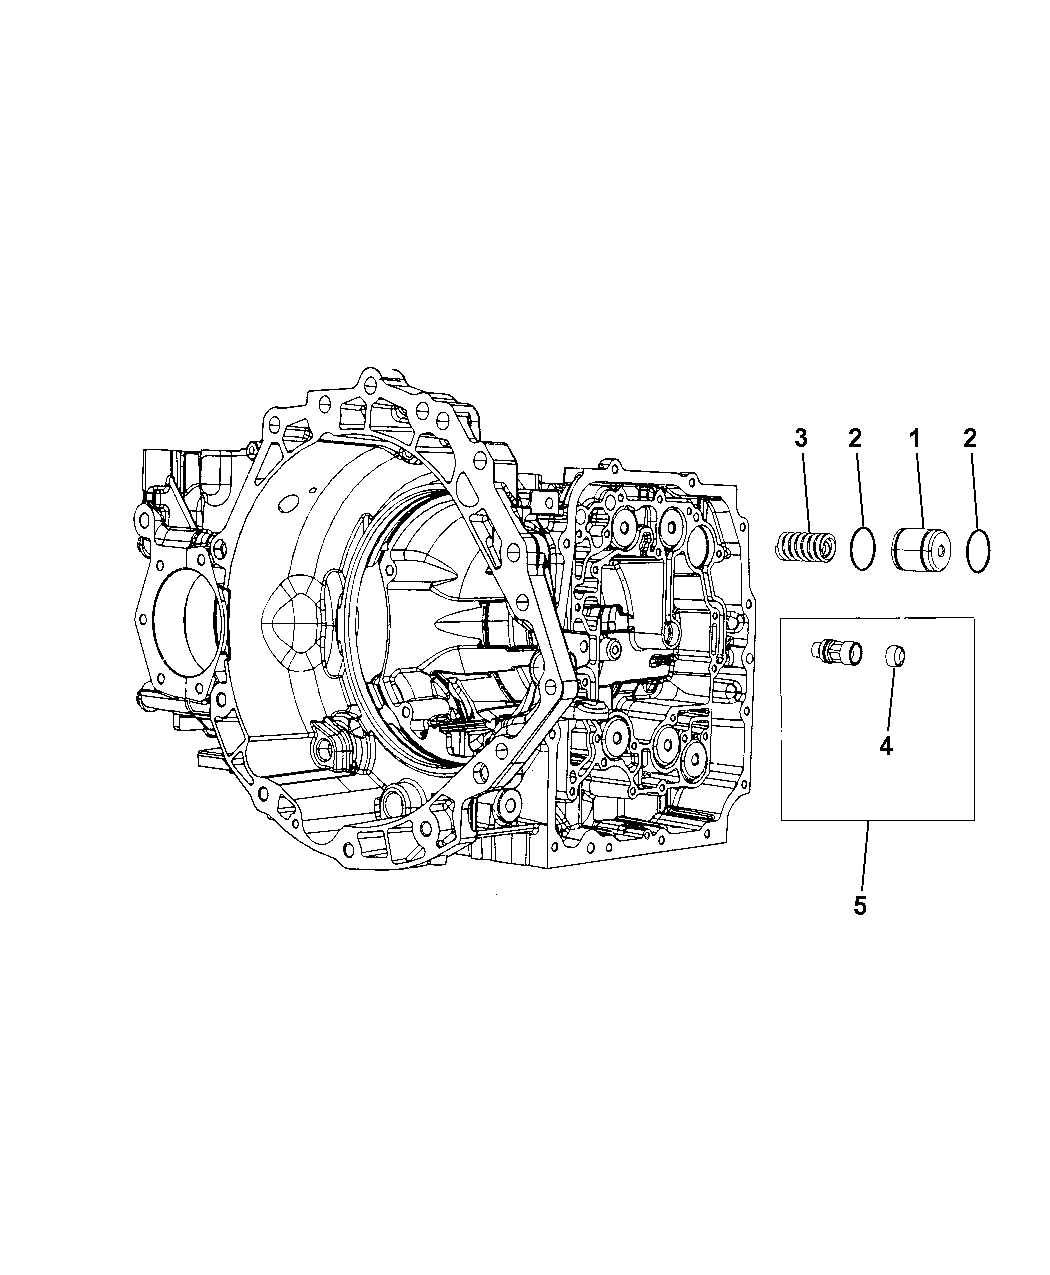 roger vivi ersaks: 2008 Dodge Grand Caravan Engine Diagram